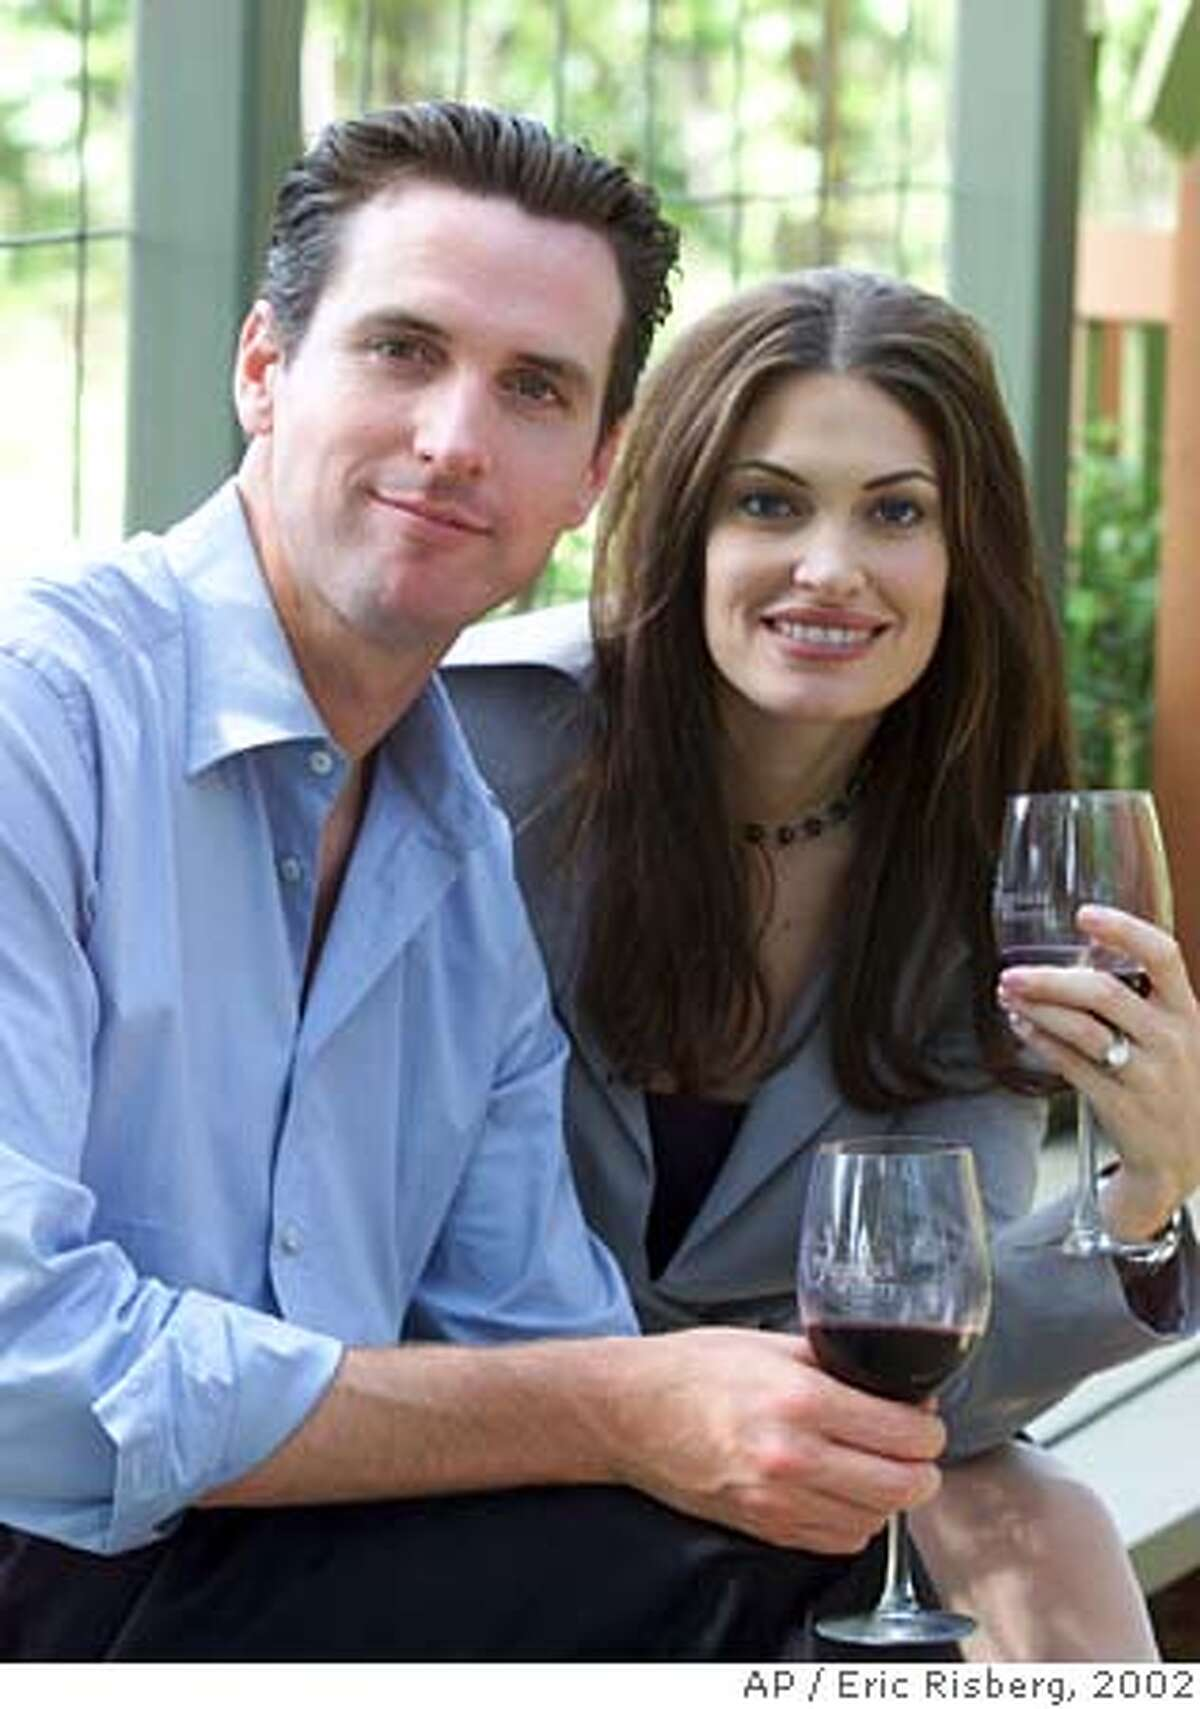 Gavin Newsom, left, and his wife, Kimberly Guilfoyle Newsom, right, pose for a picture at the PlumpJack winery in Oakville, Calif., Friday June 7, 2002. San Francisco Mayor Gavin Newsom and his wife, Court TV legal analyst Kimberly Guilfoyle Newsom, are filing for divorce after three years of marriage. In a joint statement issued Wednesday by the mayor's office, the Newsoms cited the strain posed by their high-profile, bicoastal careers as the reason for the split. (AP Photo/Eric Risberg) A JUNE 7 2002 PHOTO Ran on: 01-06-2005 Mayor Gavin Newsom and wife Kimberly Guilfoyle Newsom are getting divorced. Ran on: 01-06-2005 Mayor Gavin Newsom and wife Kimberly Guilfoyle Newsom are getting divorced. Ran on: 01-09-2005 ##Chronicle#1/6/2005####0422551537